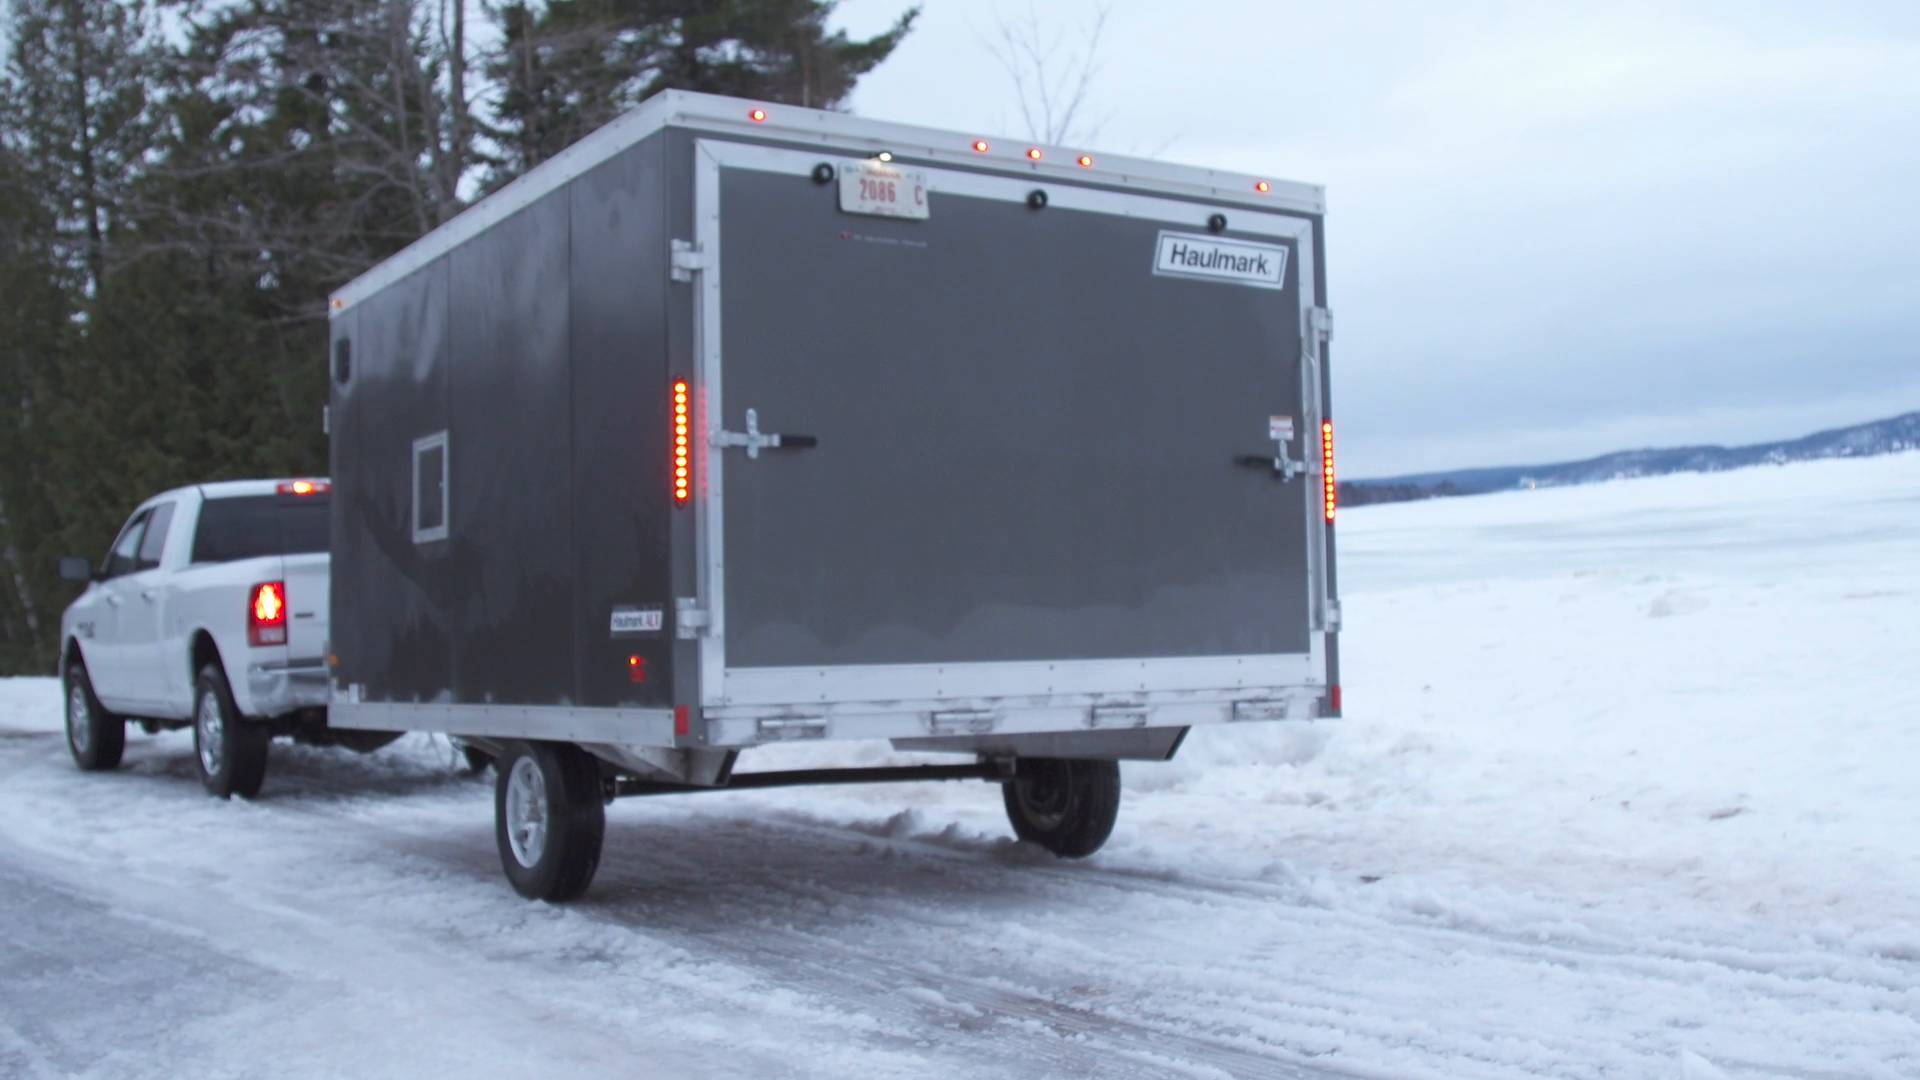 haulmark enclosed trailer wiring diagram honeywell th3110d1008 plug great installation of 2008 cargo schema diagrams rh 32 pur tribute de